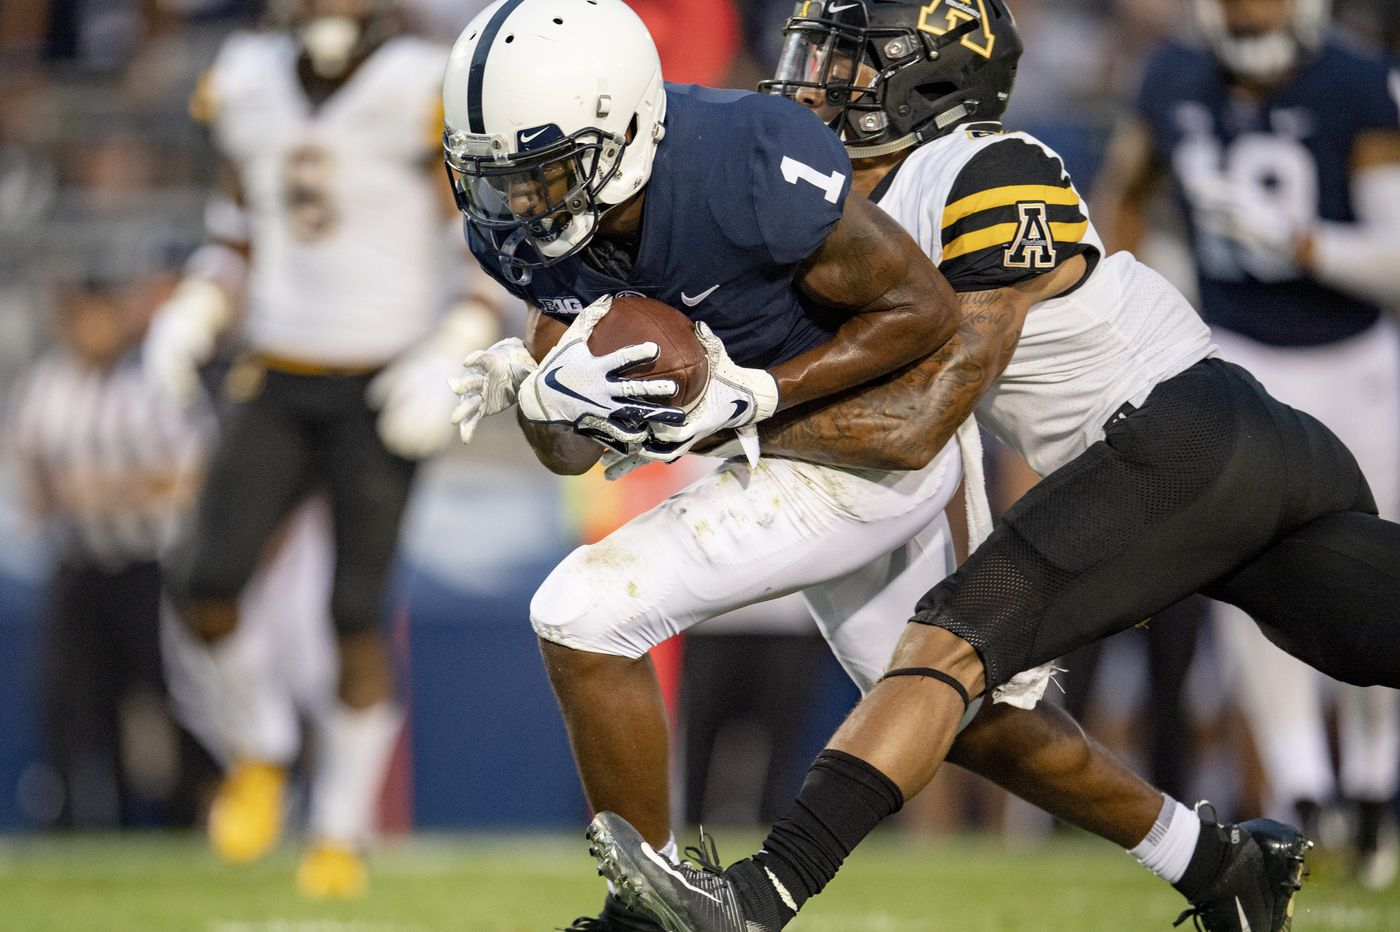 KJ Hamler runs and catches on clutch plays to propel Penn State to victory